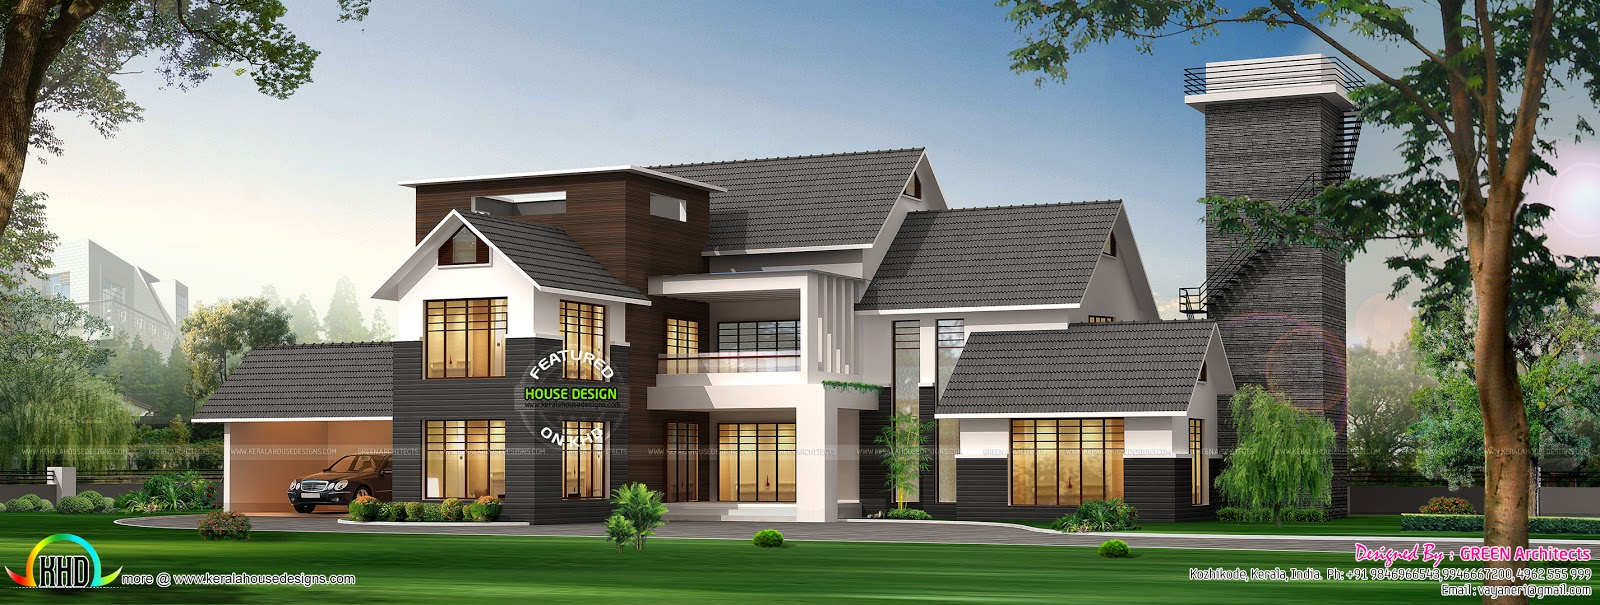 Fusion type home design kerala home design and floor plans for Kerala house designs and floor plans 2016